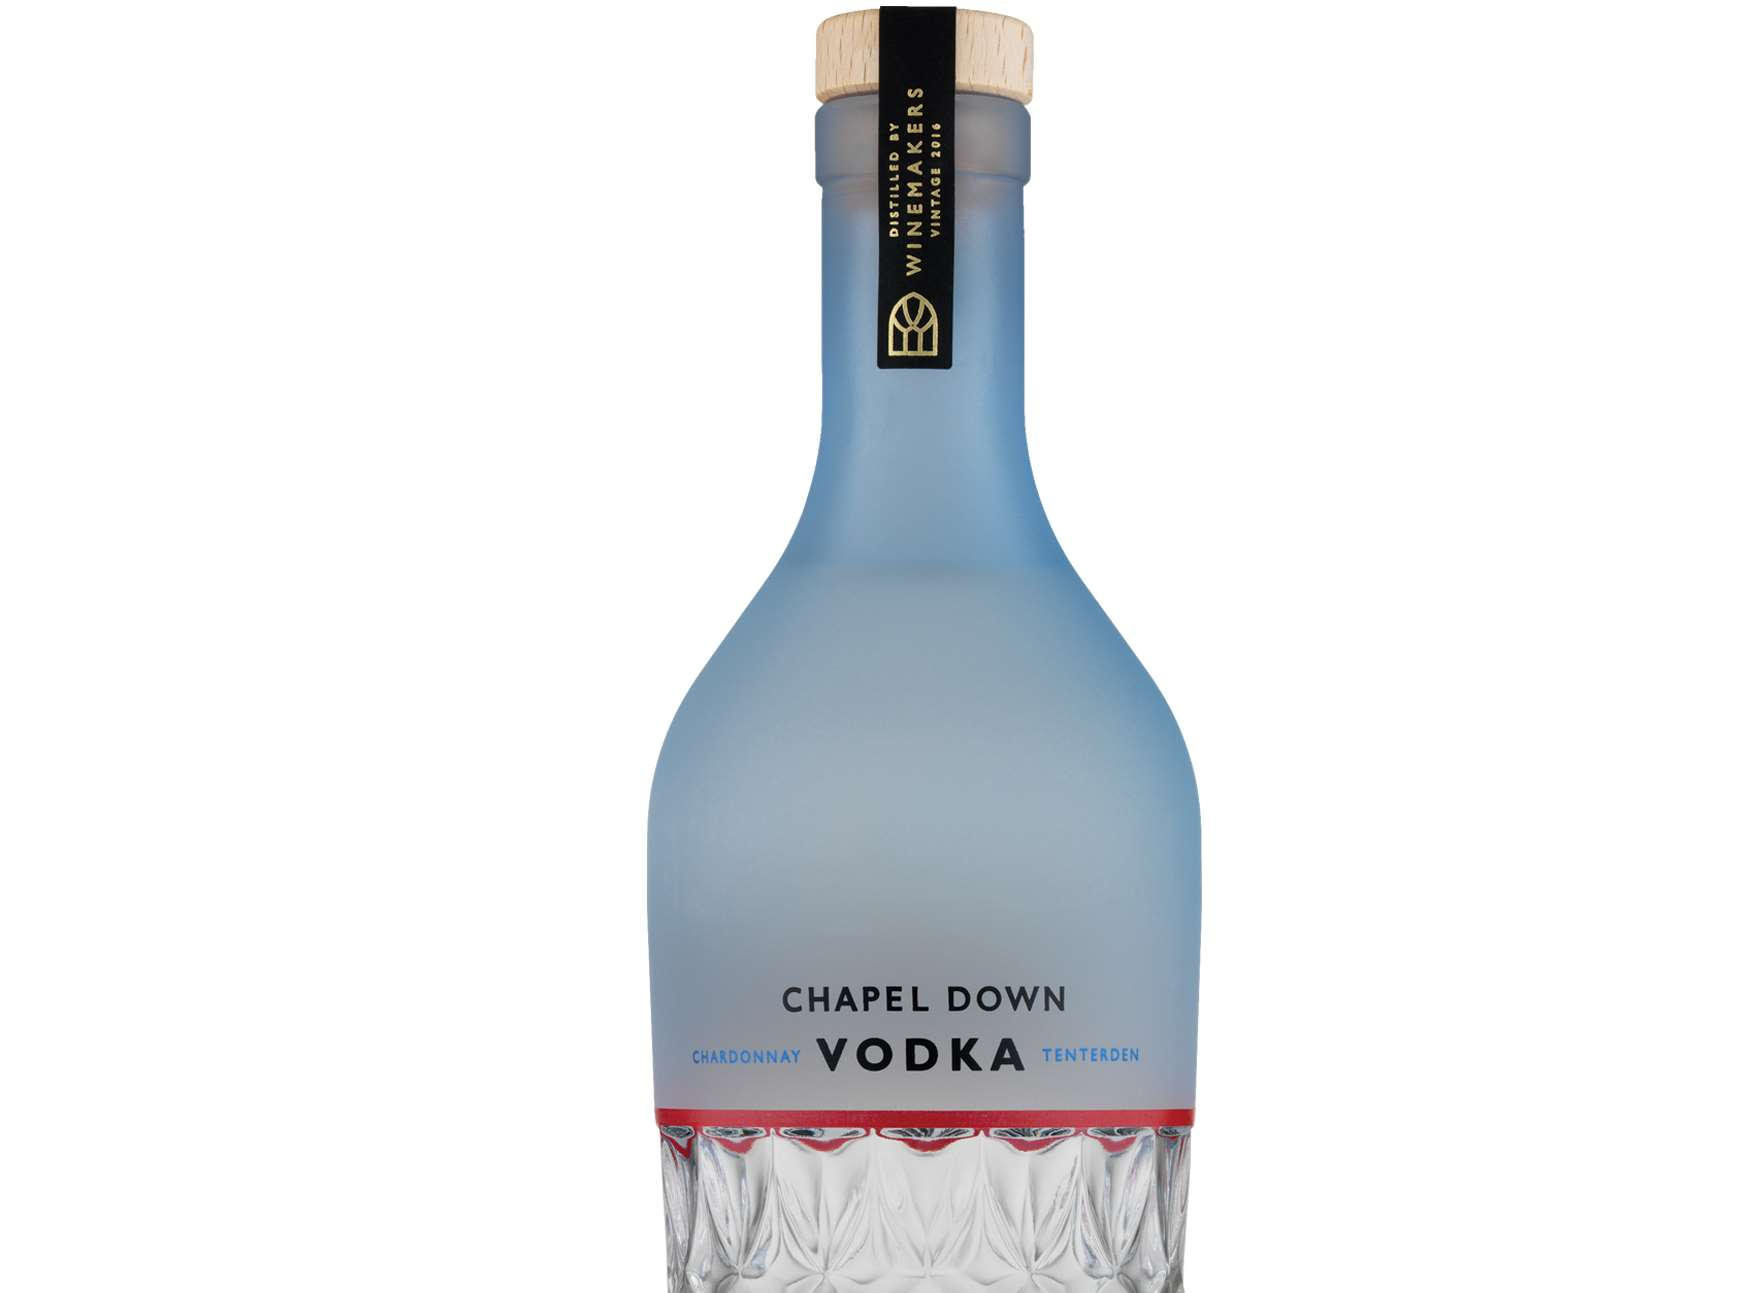 Chapel Down has launched Chardonnay Vodka